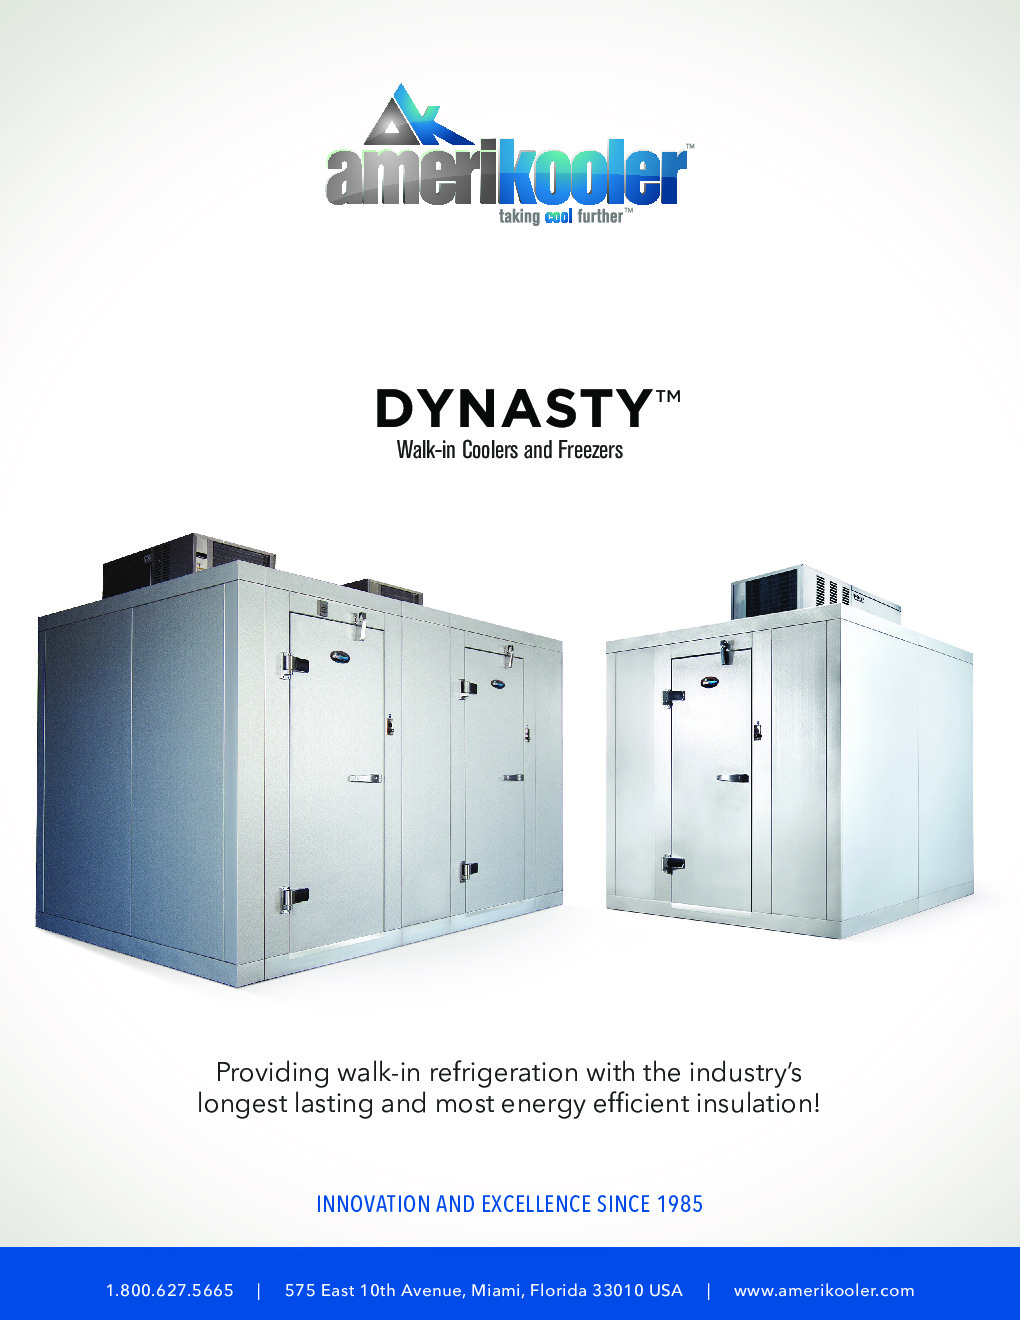 AmeriKooler DW101077N-5/5-SC 10' X 10' Walk-In Cooler, 5' L Cooler without Floor and 5' L Freezer, Self Contained